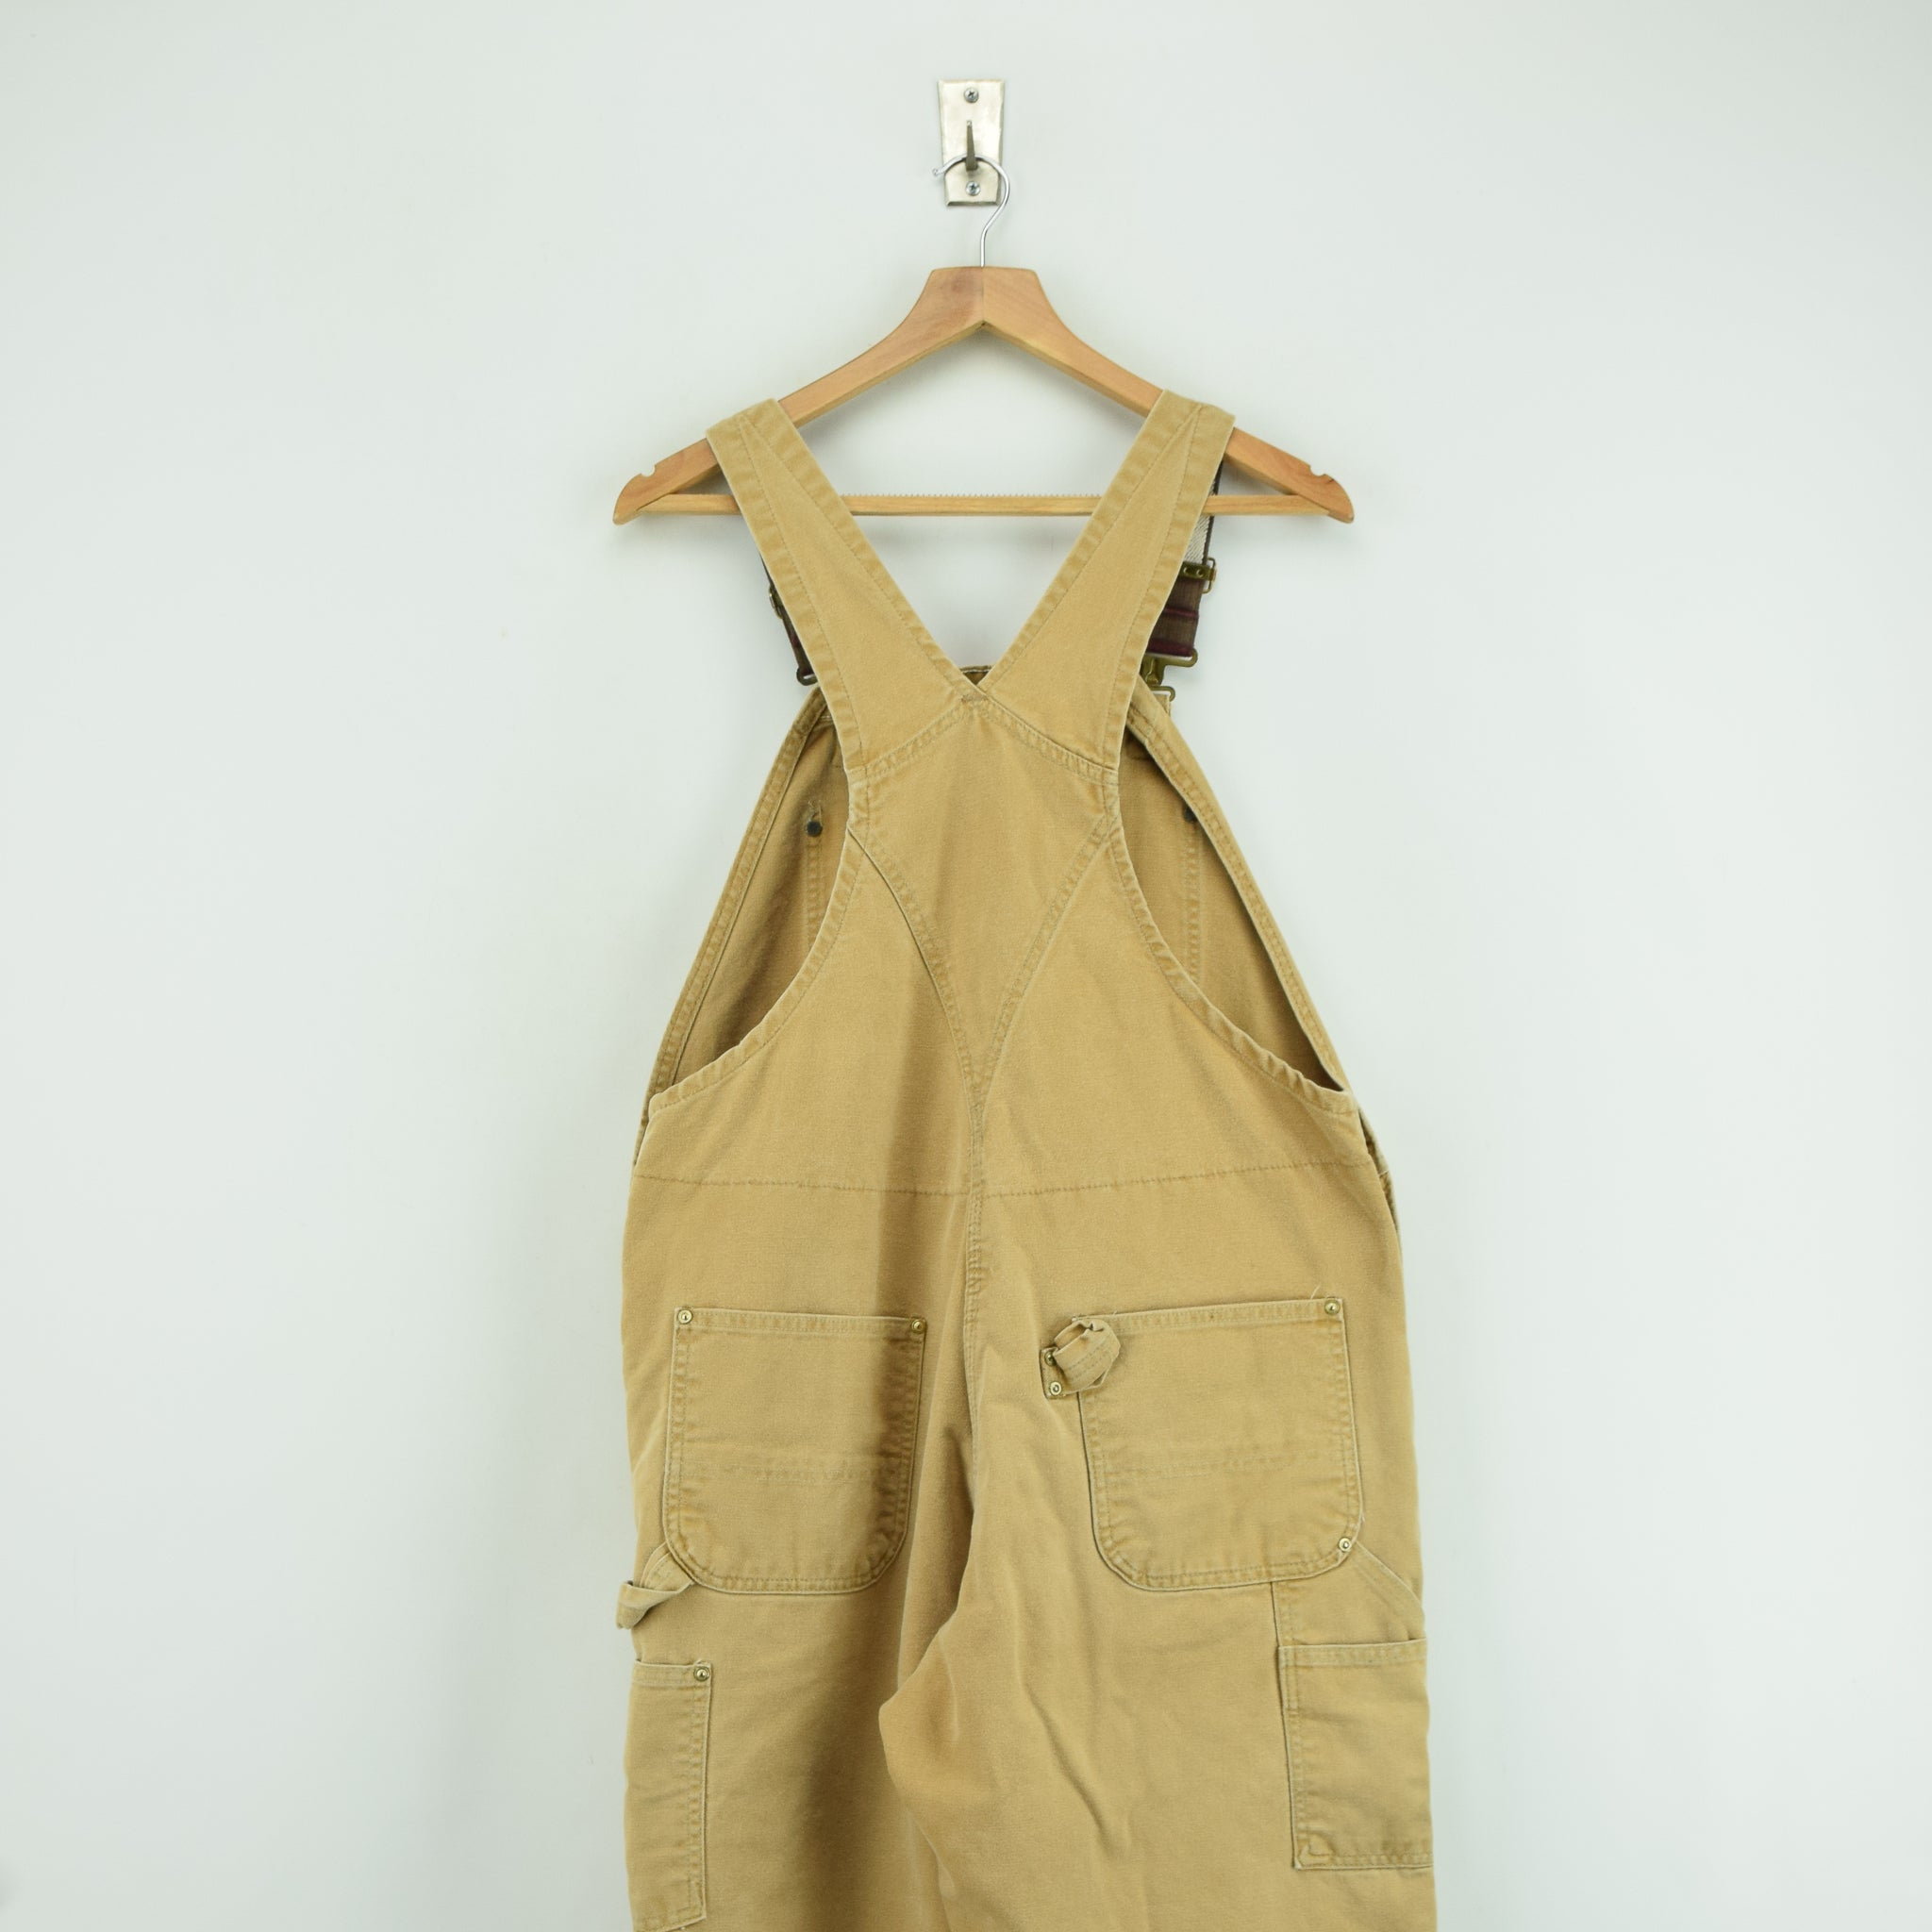 Vintage Carhartt Work Dungarees Tan Brown Duck Canvas Bib Overall Quilt Lined M back